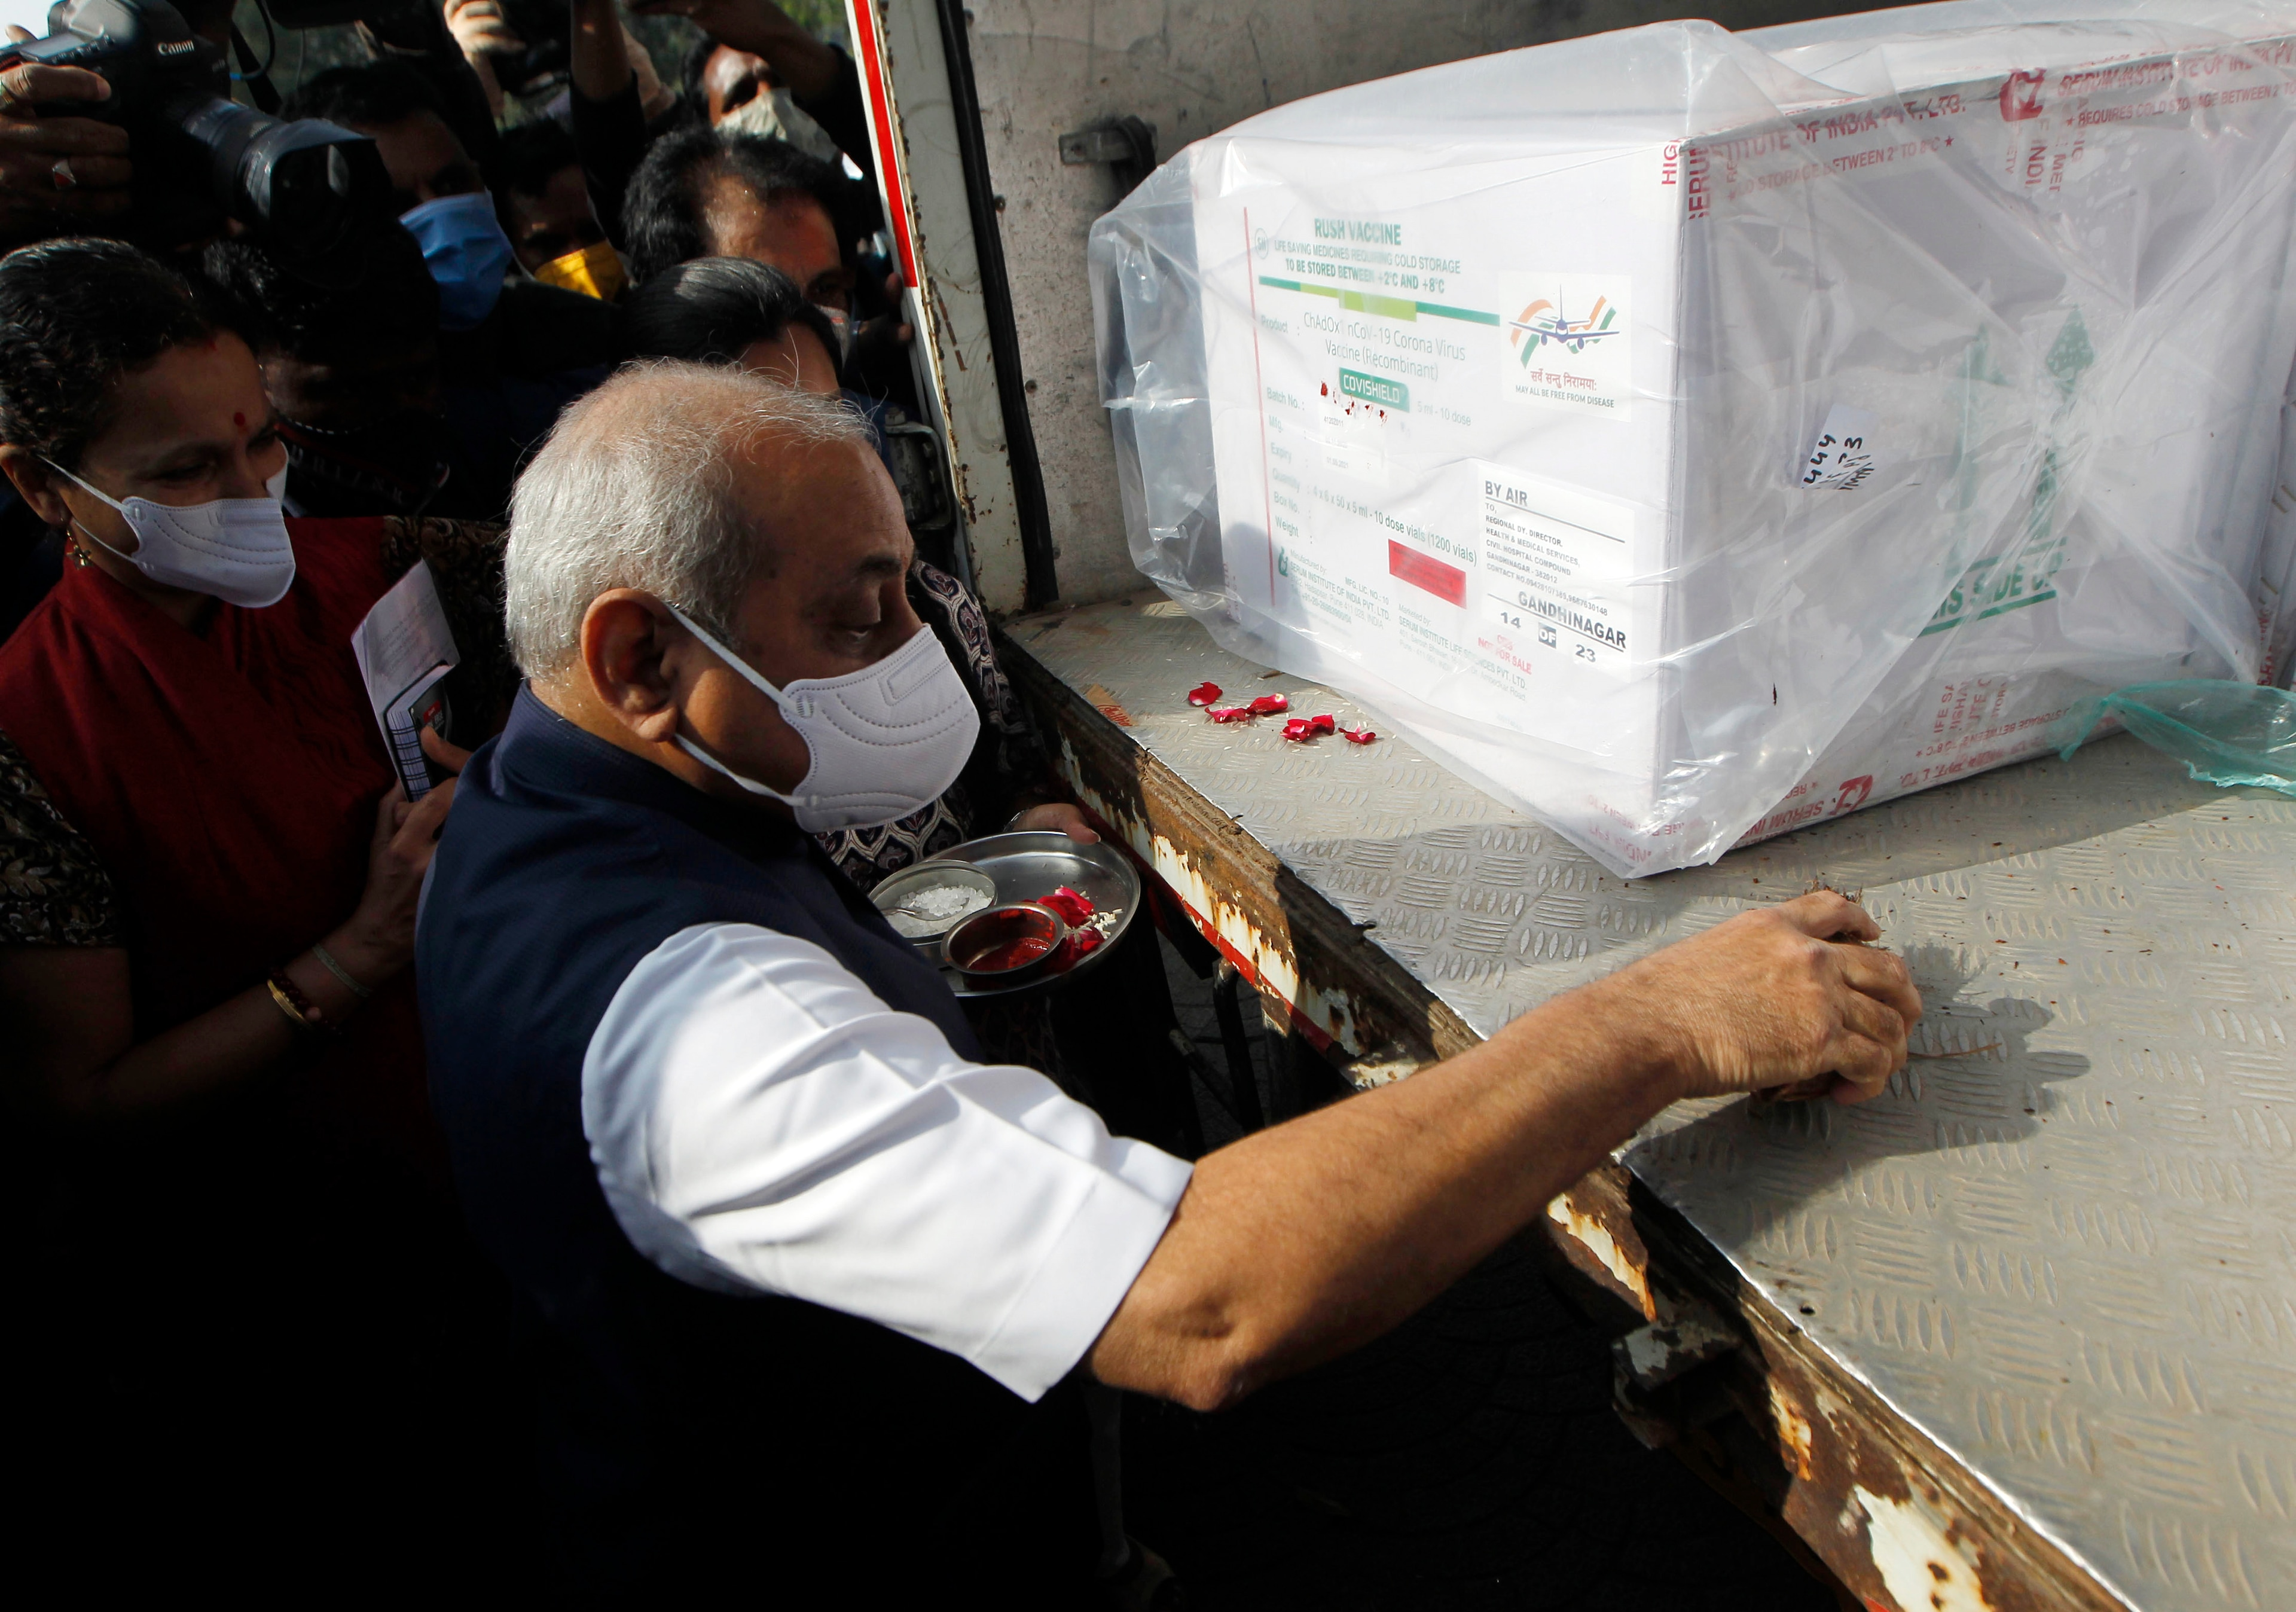 Deputy Chief Minister Nitin Patel offering prayer in front of the COVISHIELD vaccine consignment from Serum Institute of India as it arrives at the Ahmedabad airport, ahead of the rollout of the vaccination program, in Ahmedabad on Tuesday.